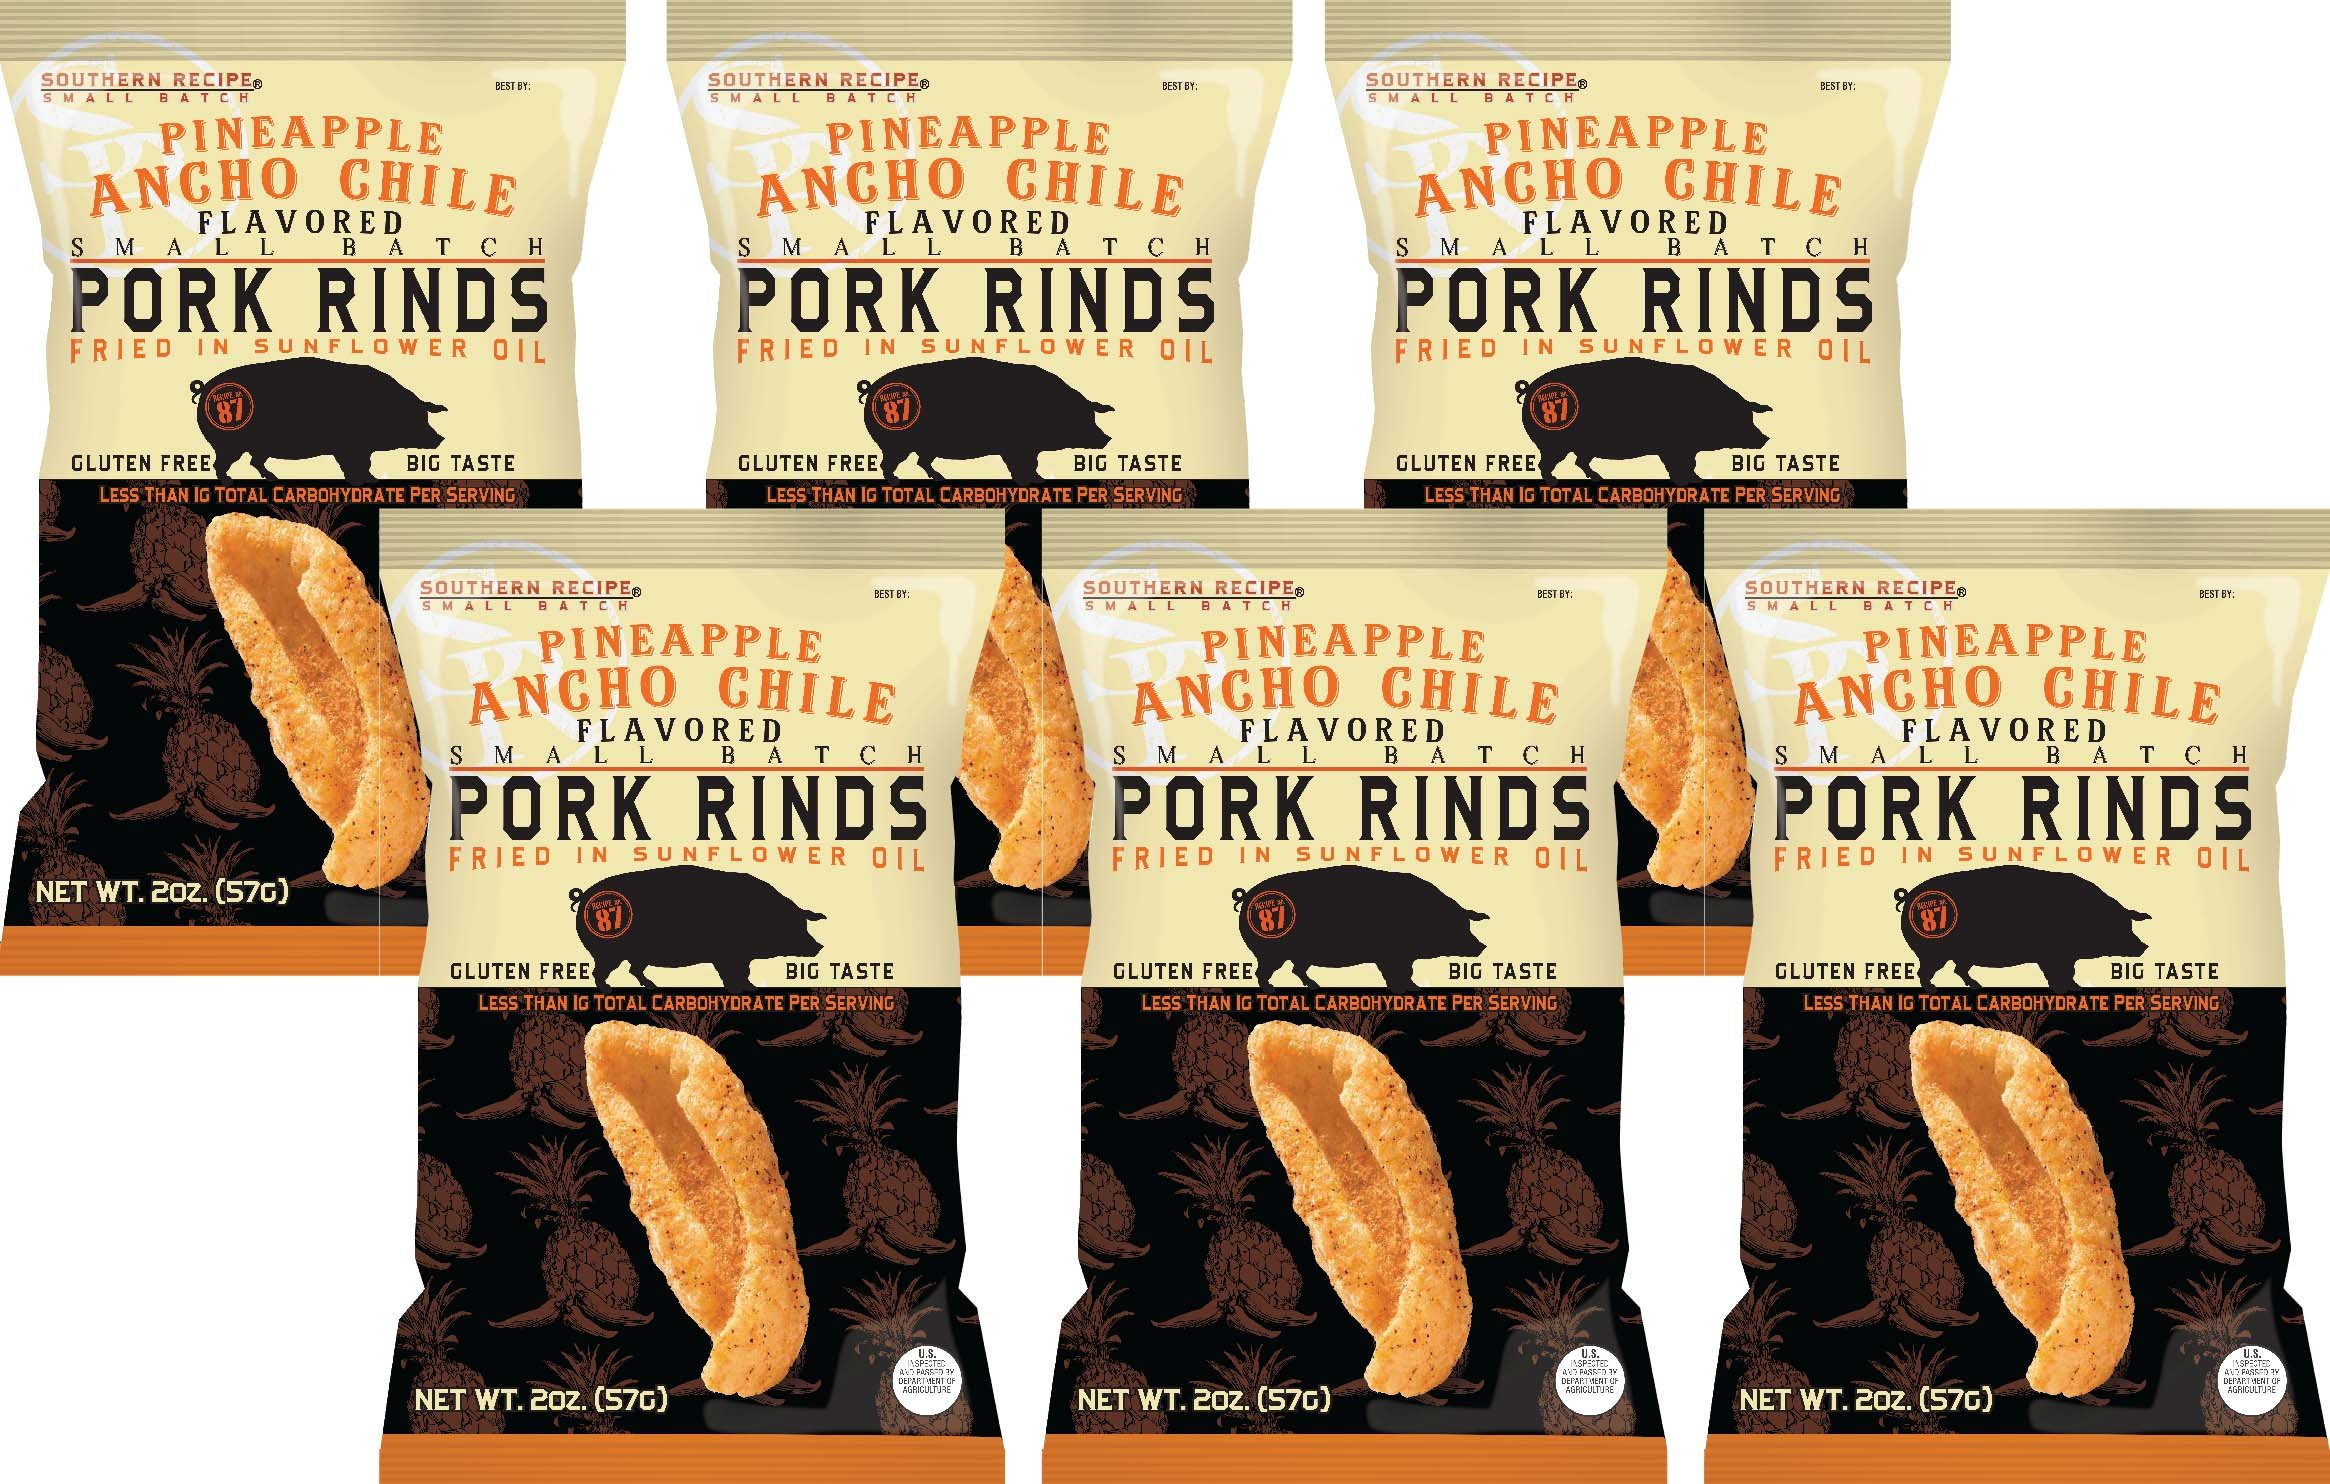 Southern Recipe Small Batch Classic Pork Rinds, Pineapple and Chile Ancho, 2 Ounce Bag (Pack of 6) by Southern Recipe (Image #3)